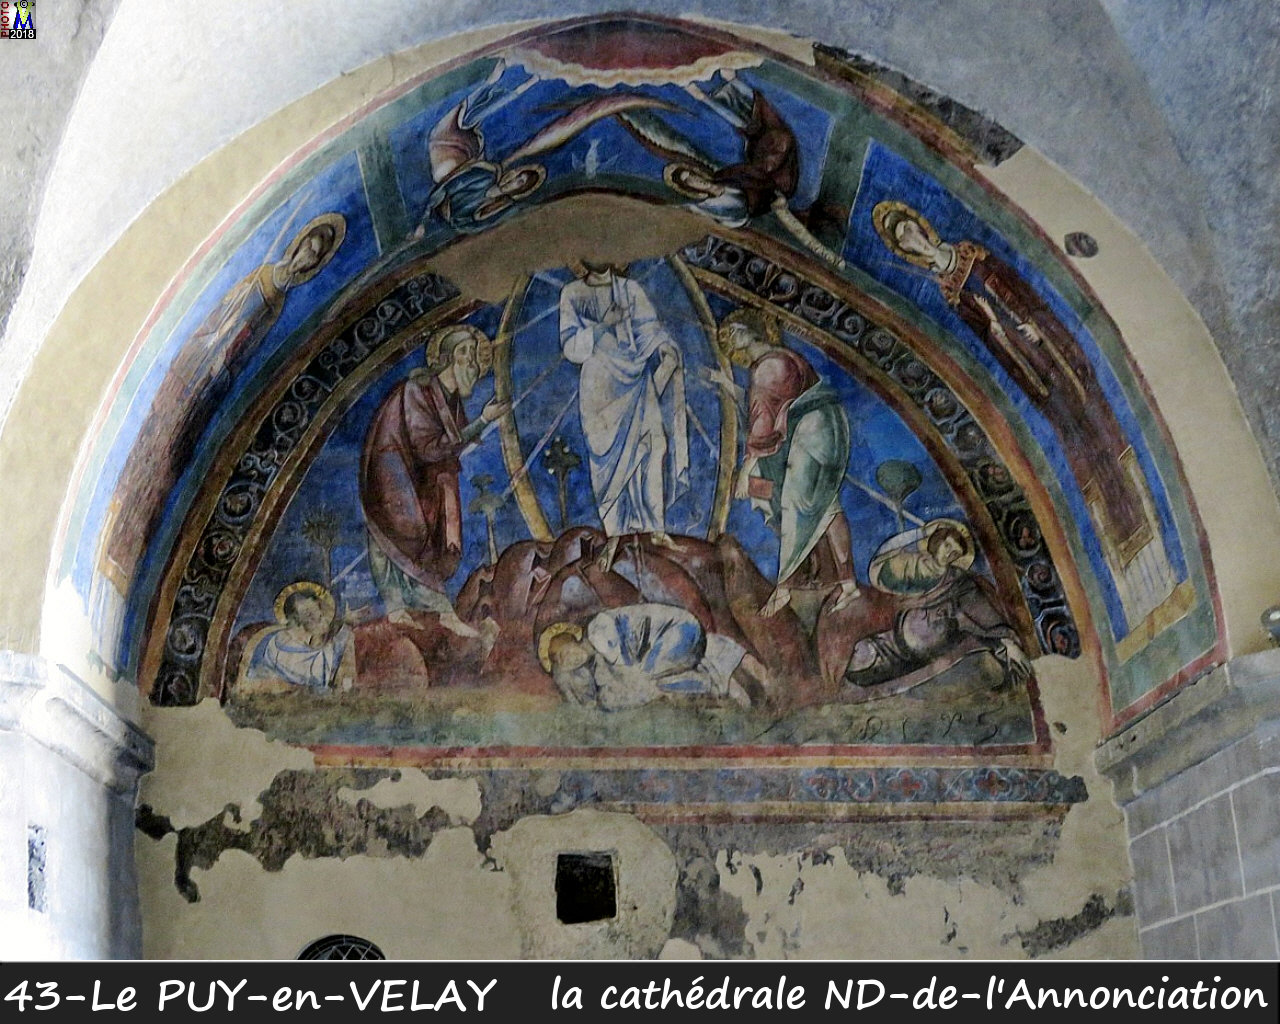 43PUY-EN-VELAY_cathedrale_128.jpg